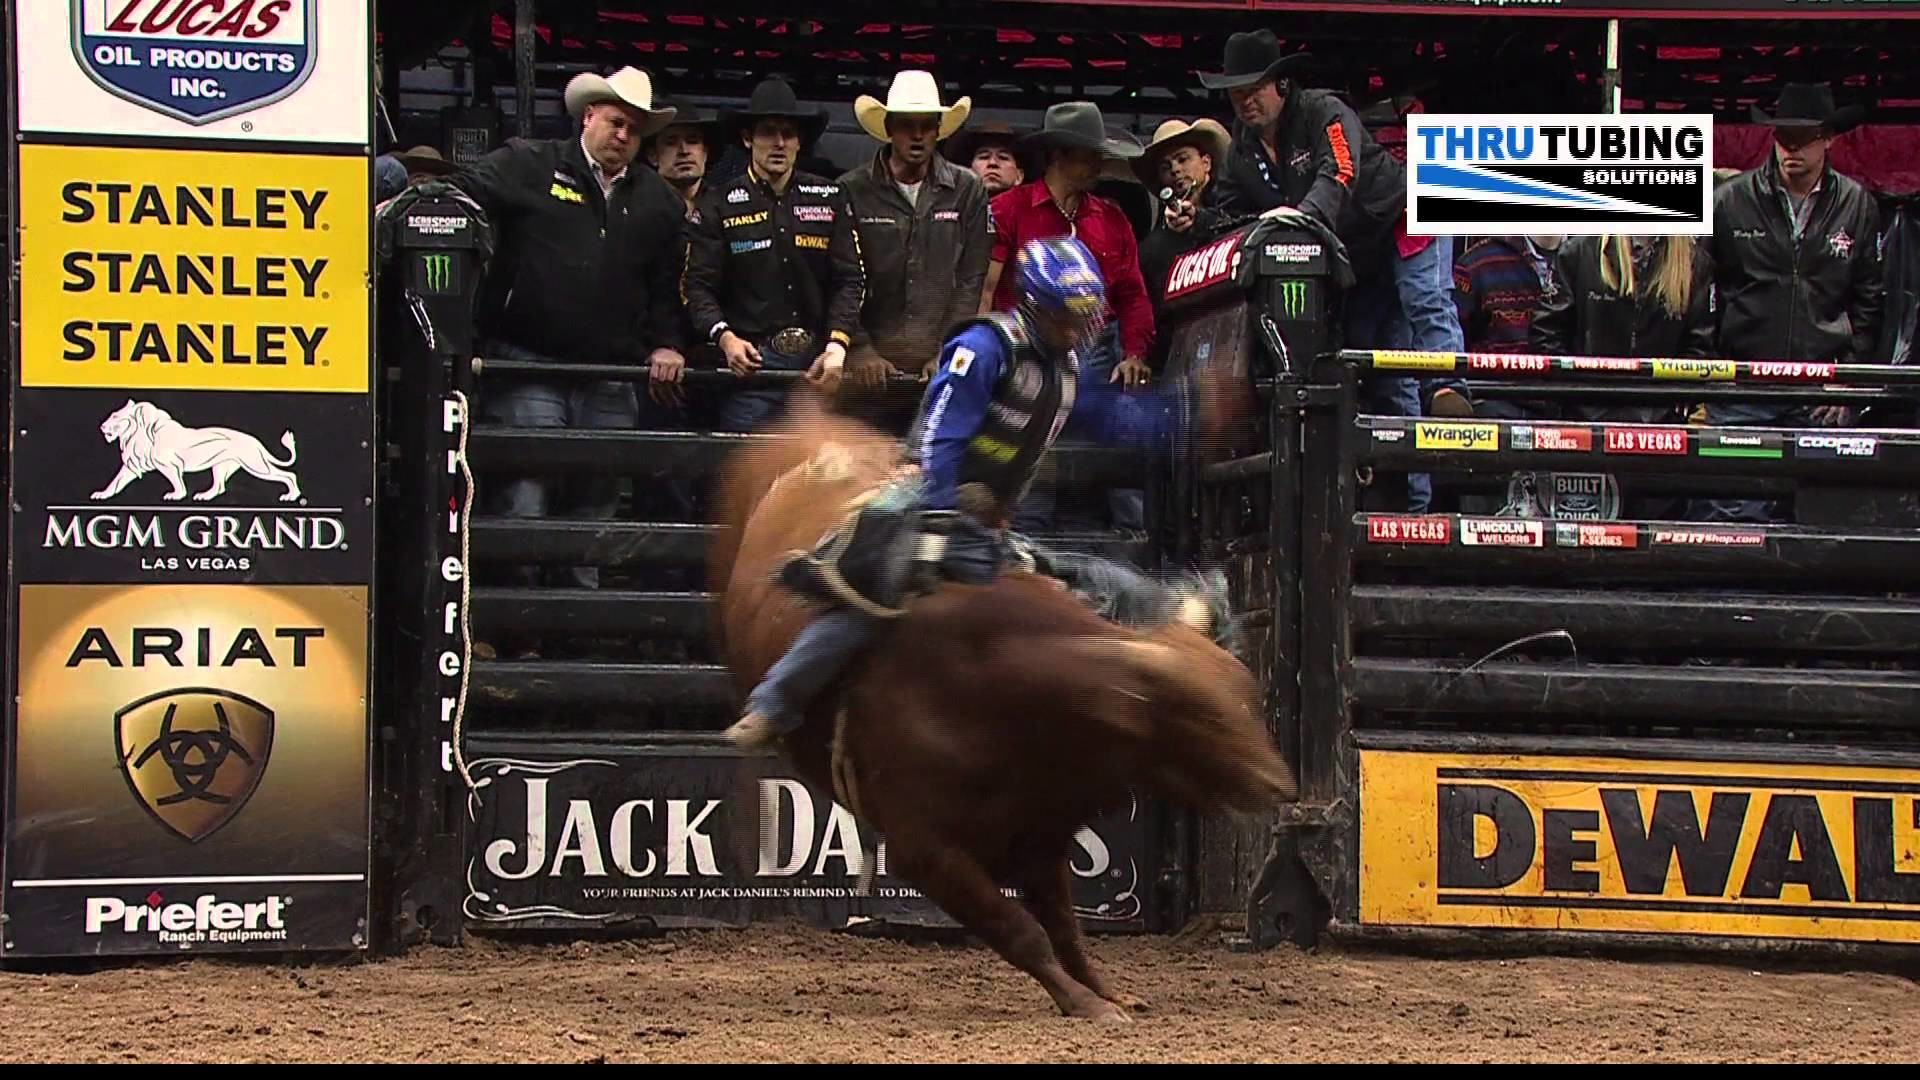 1920x1080 Kaique Pacheco rides Roll of the Dice for 86.25 points (PBR)